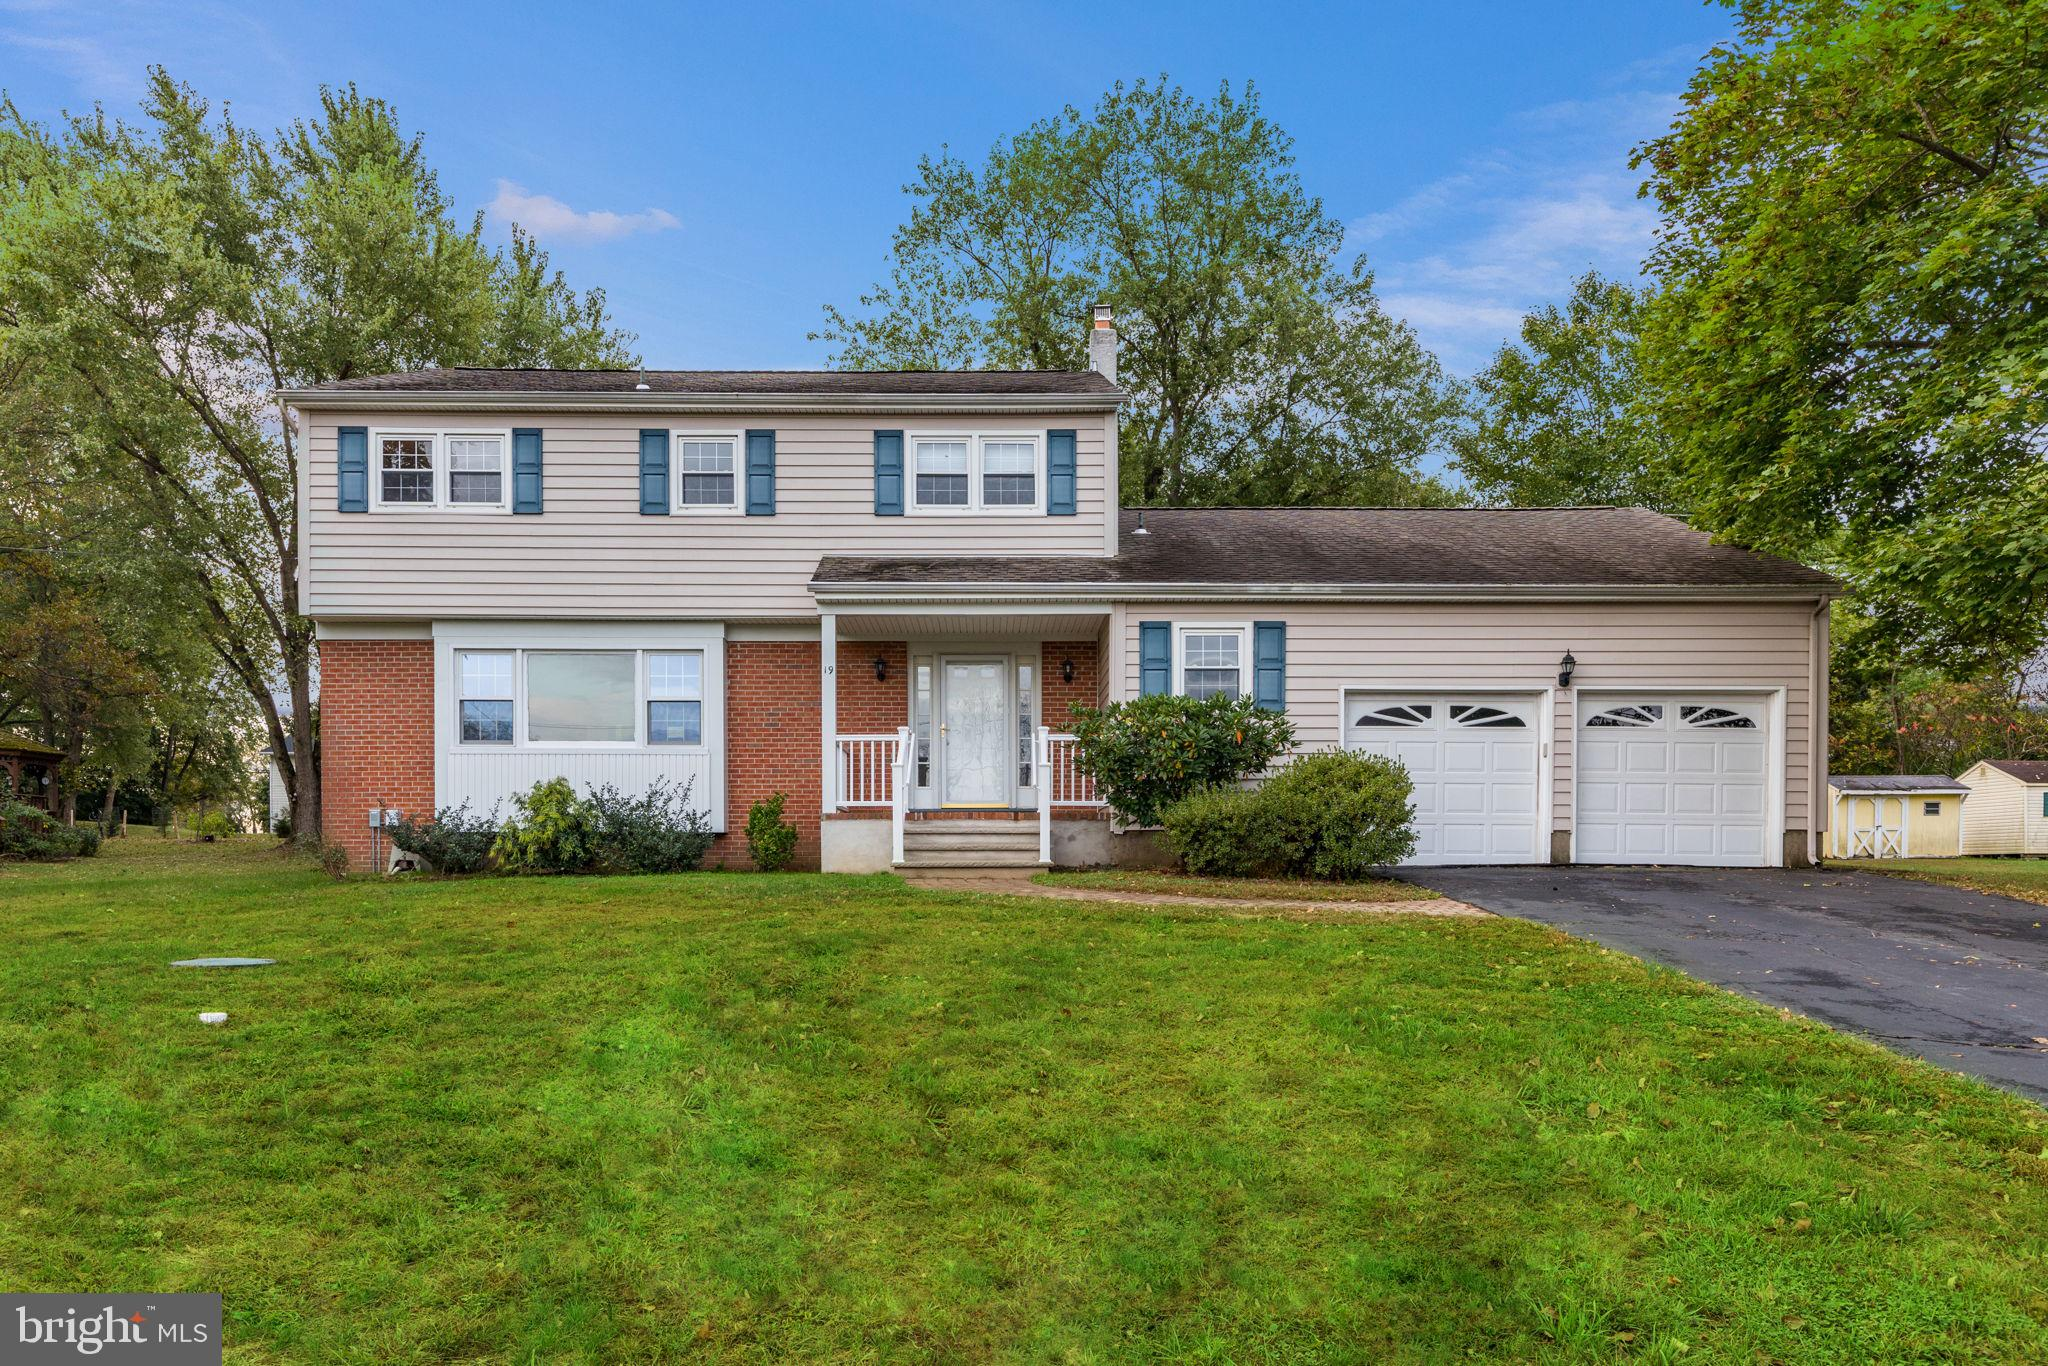 4 BR center hall colonial